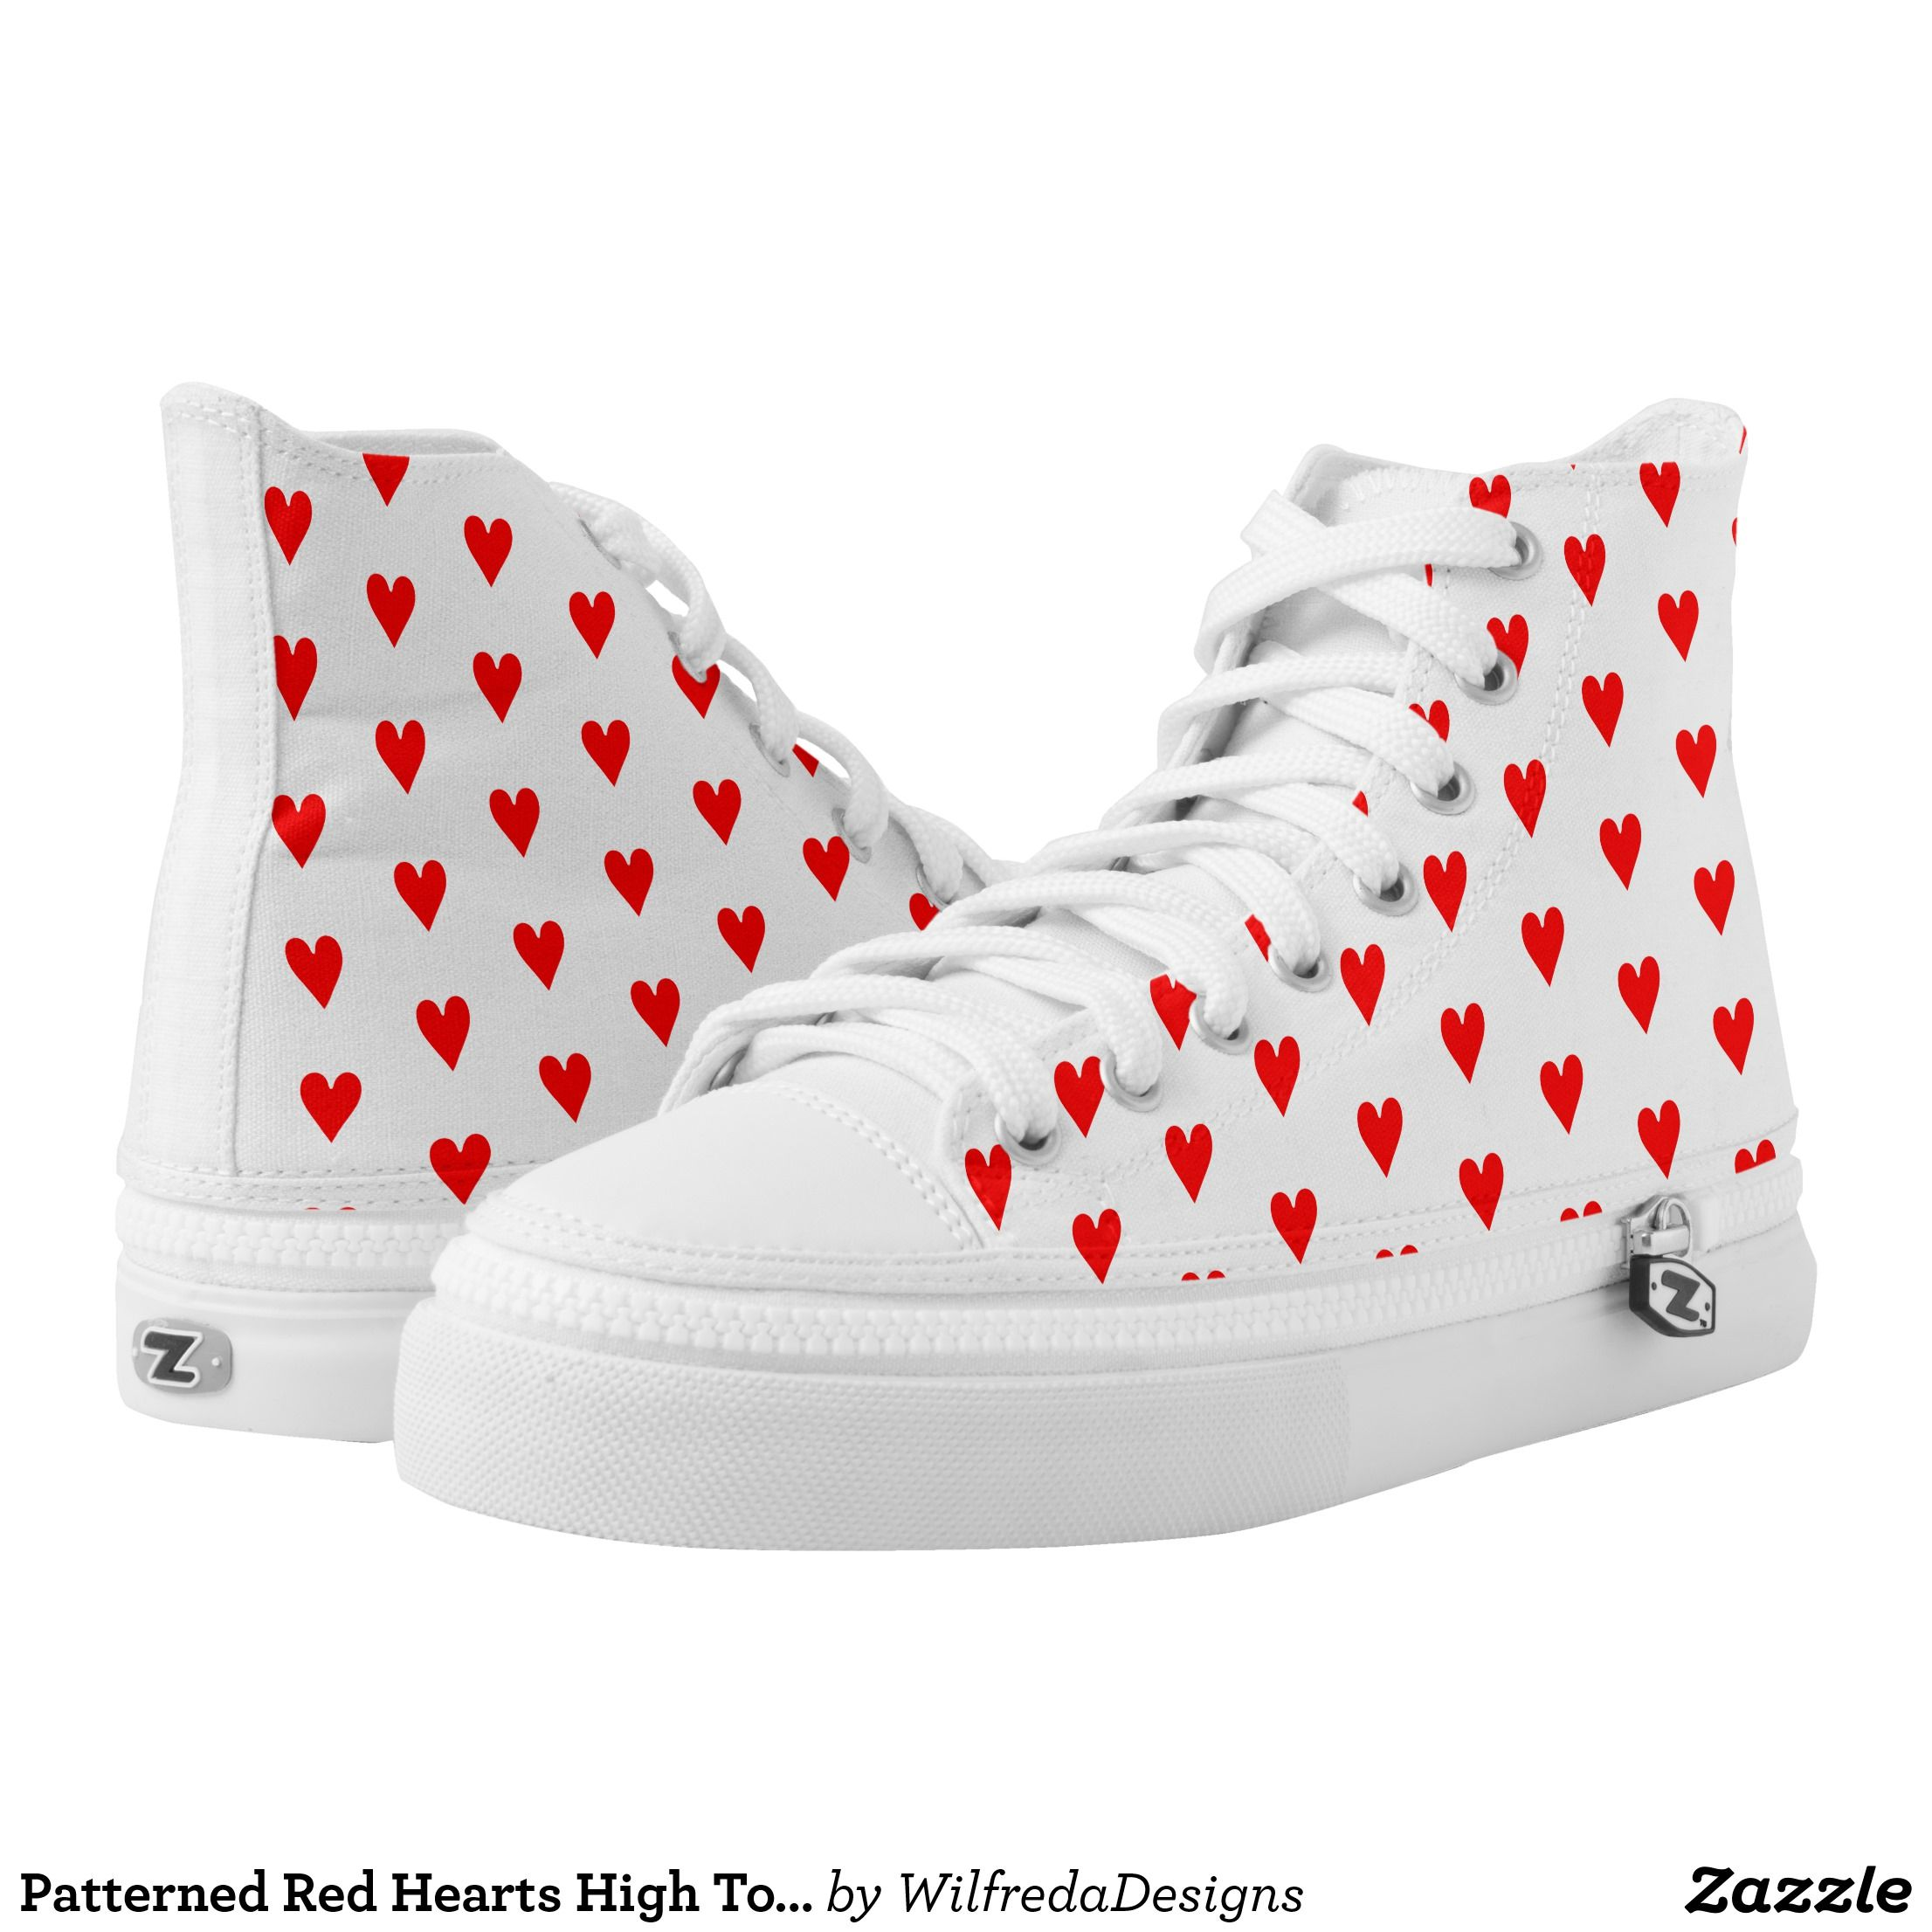 Patterned Red Hearts High Top Tennis